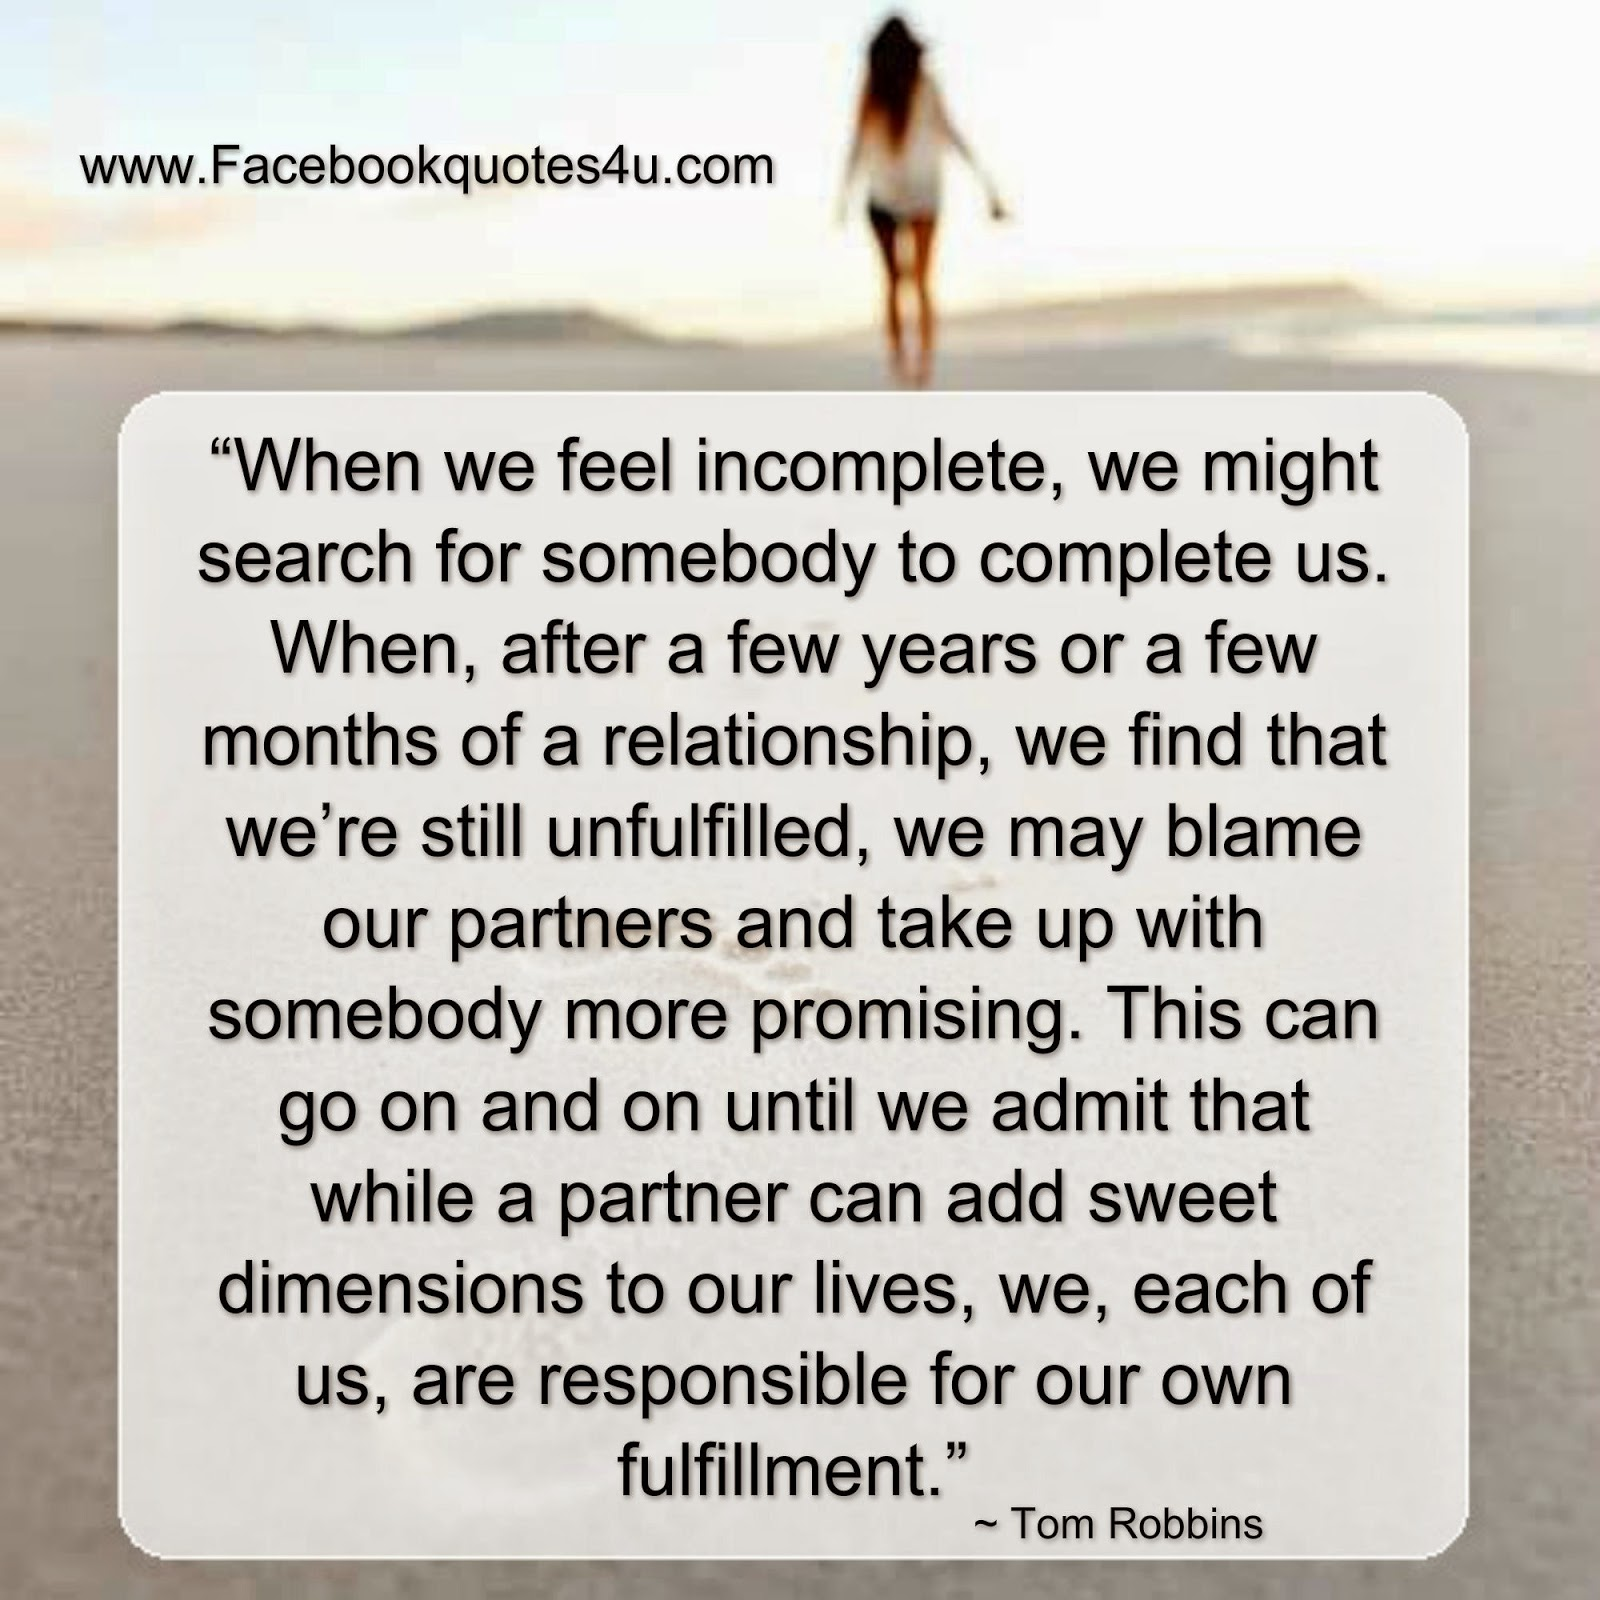 I feel unfulfilled in my relationship